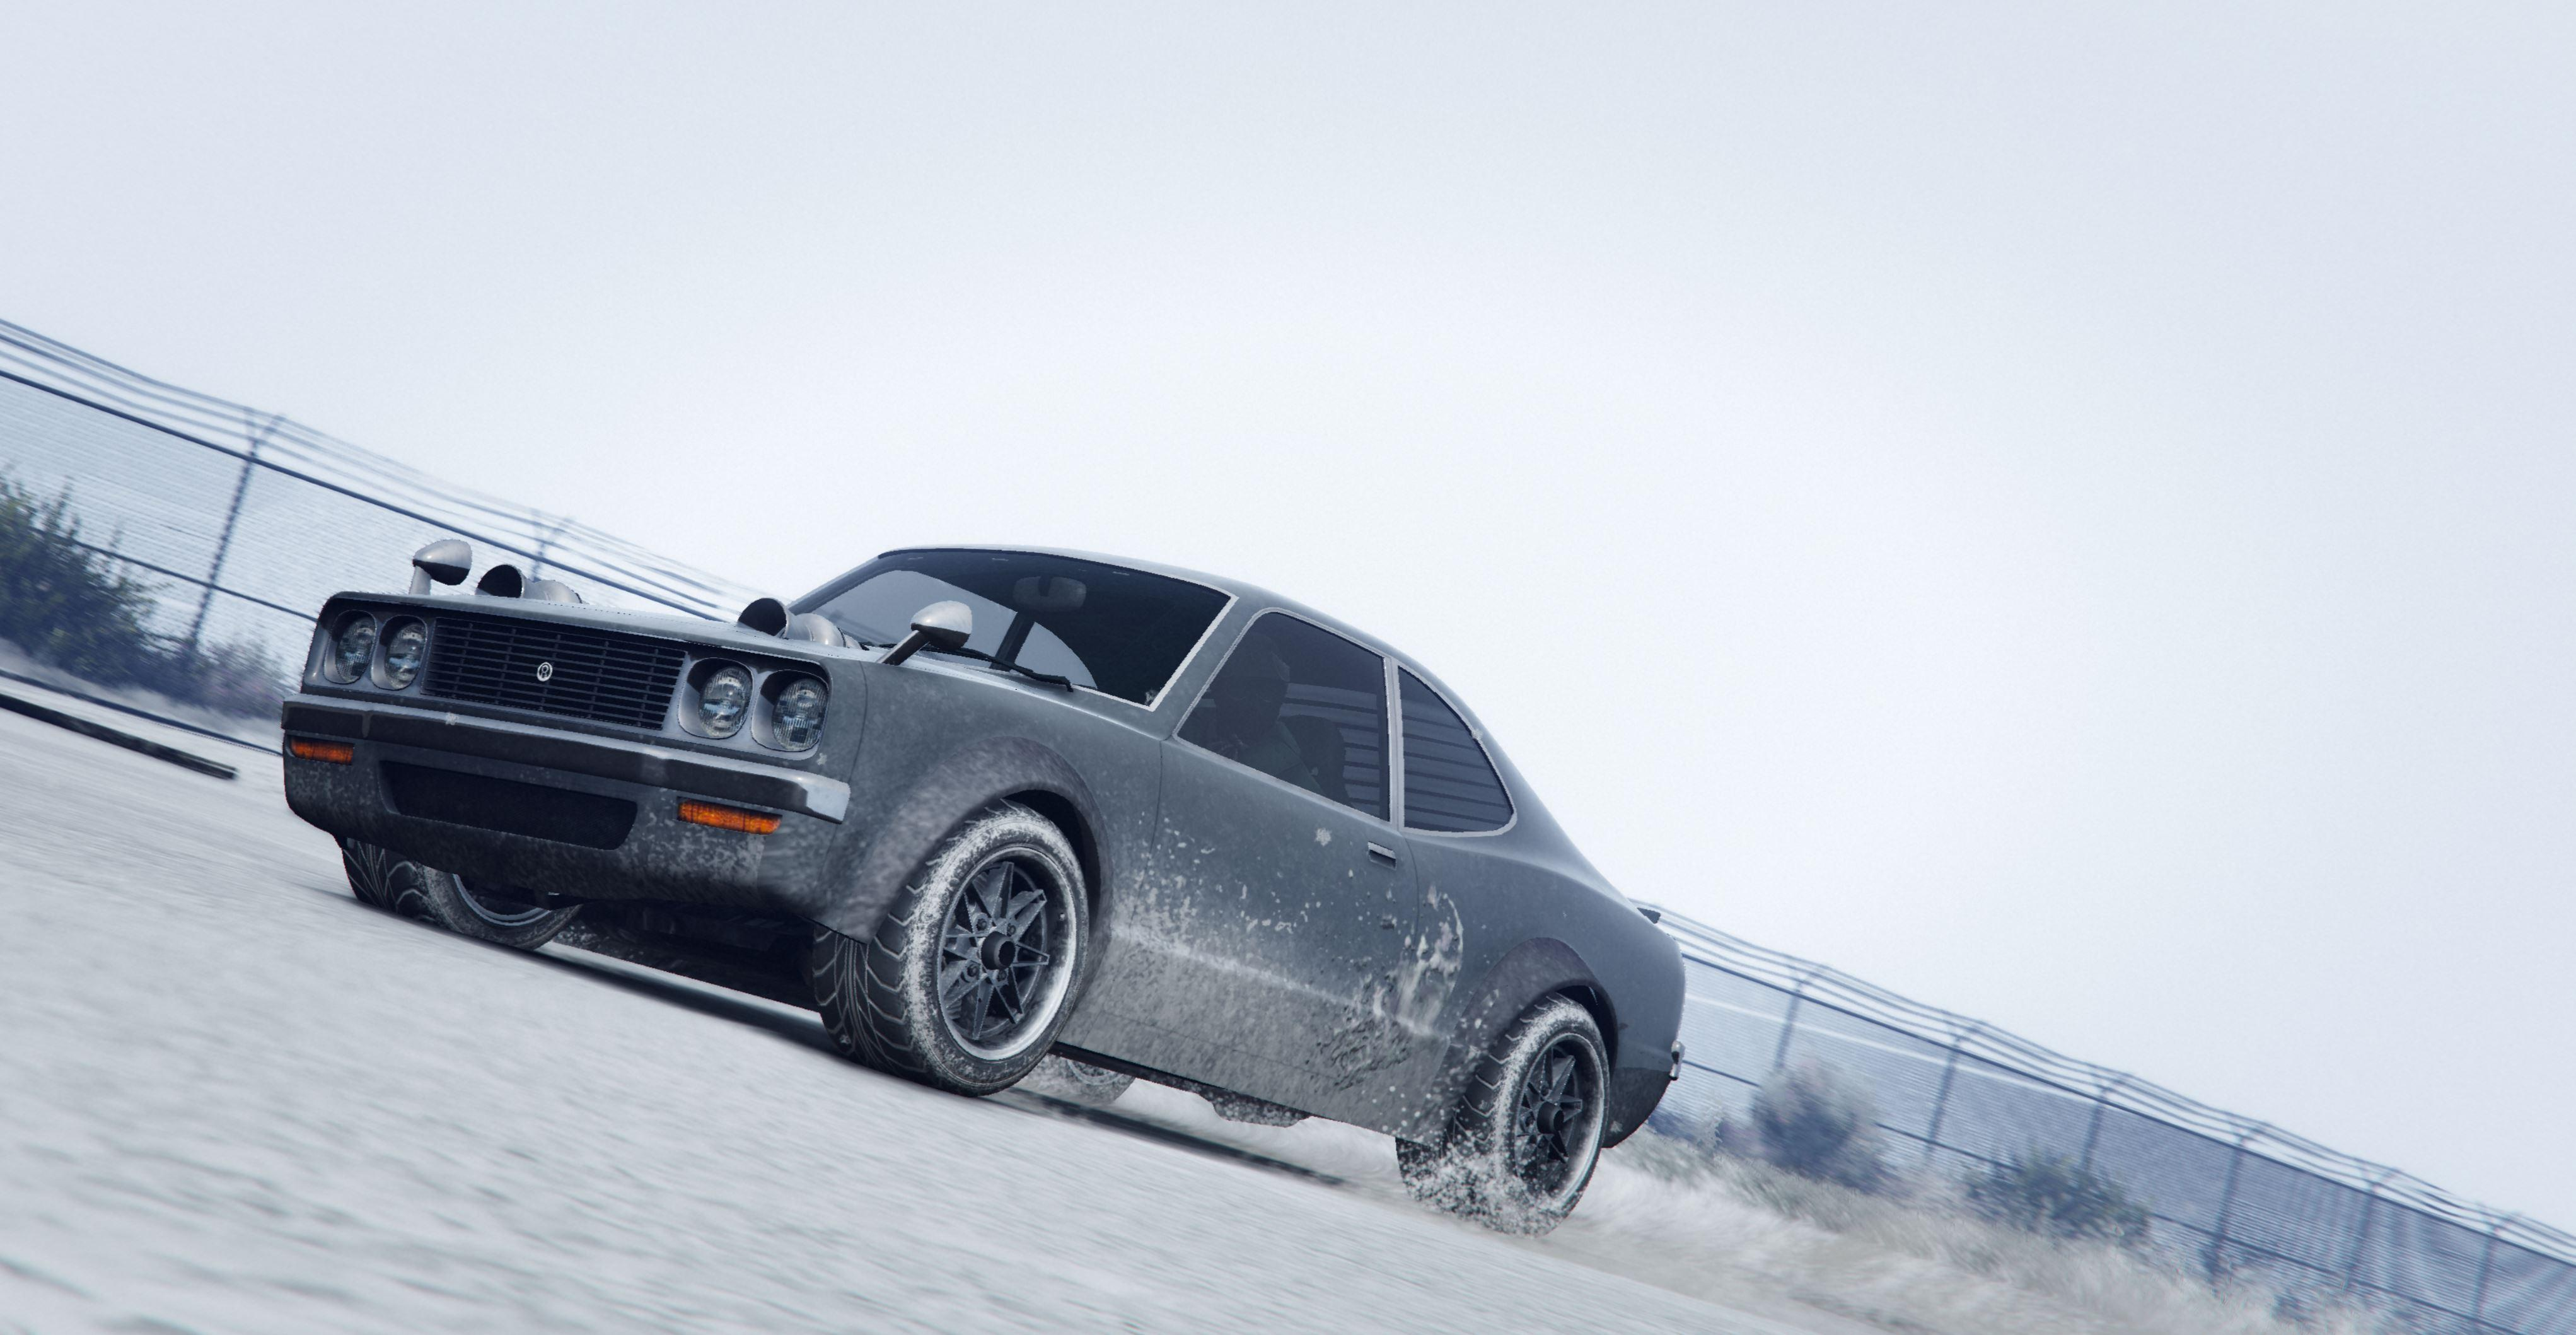 car in snow gta 5 4k, hd games, 4k wallpapers, images, backgrounds